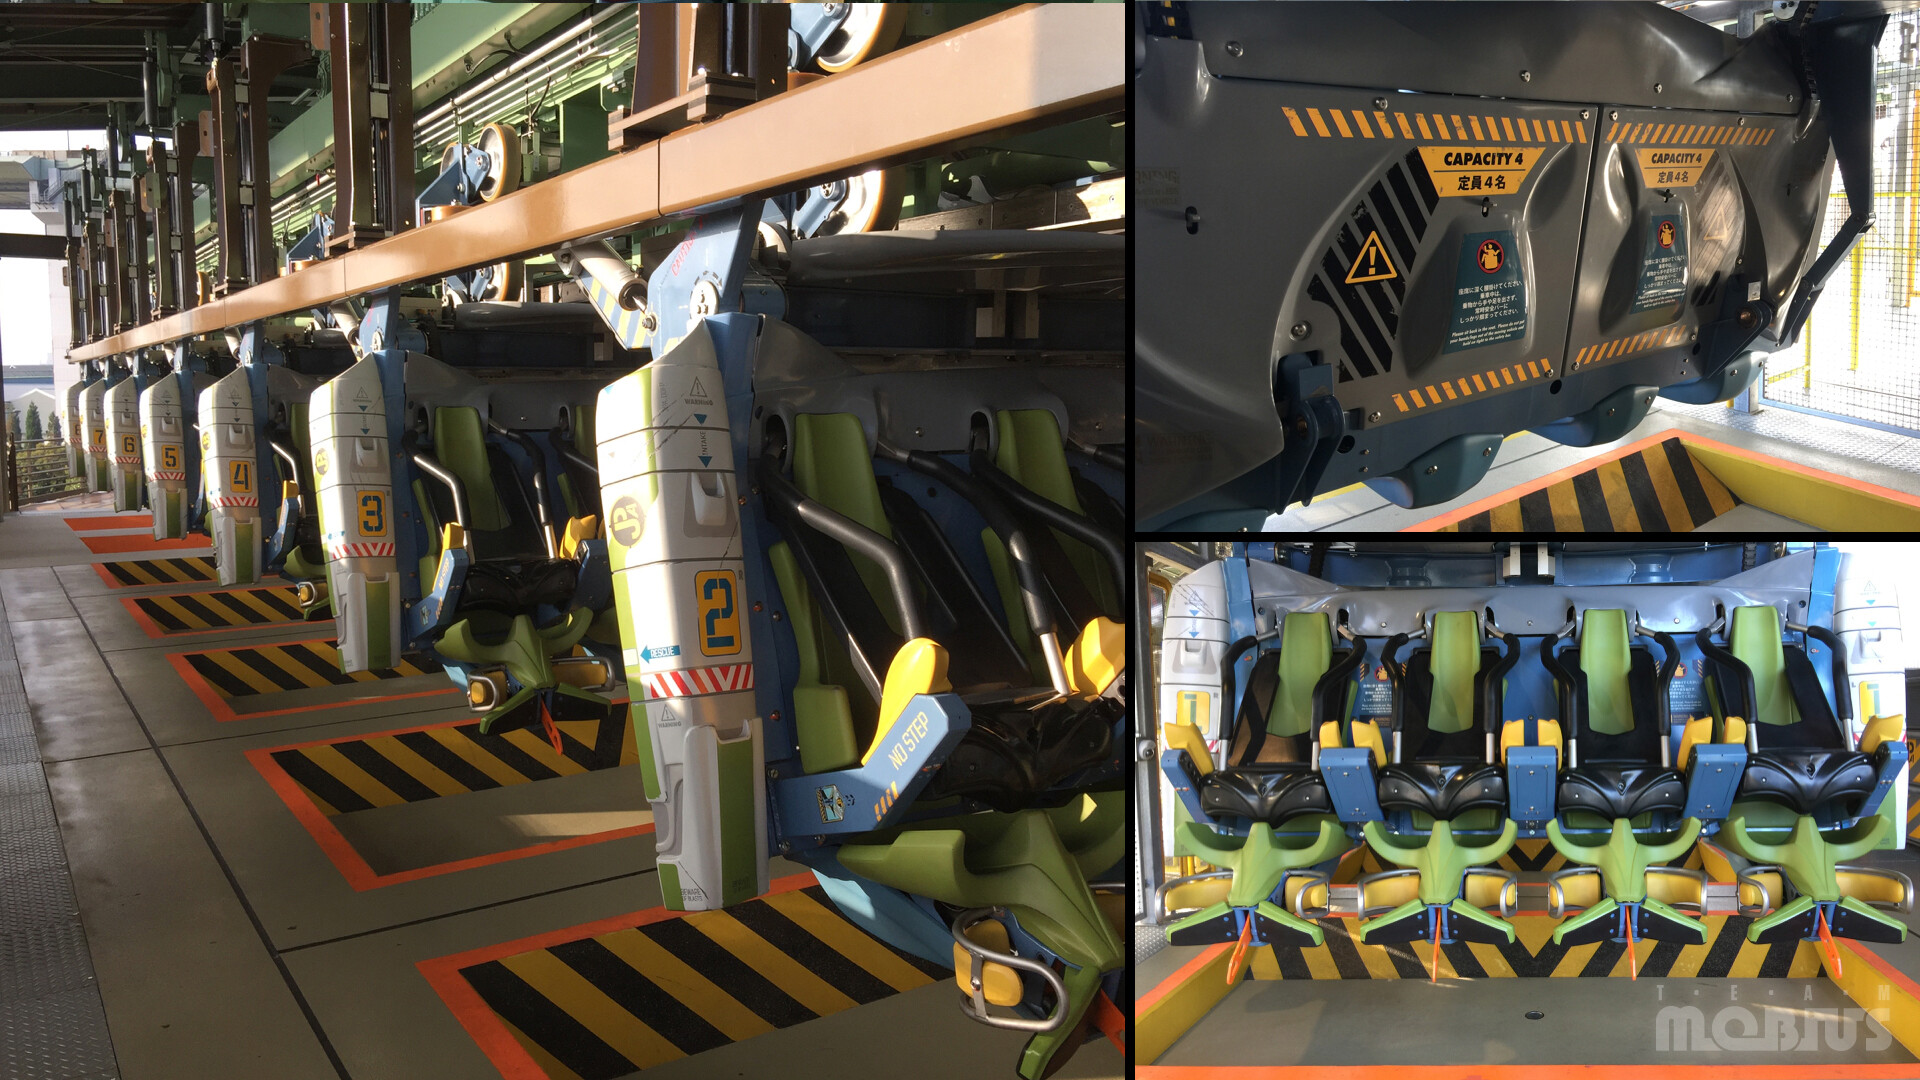 Production photo of ride vehicle in-station